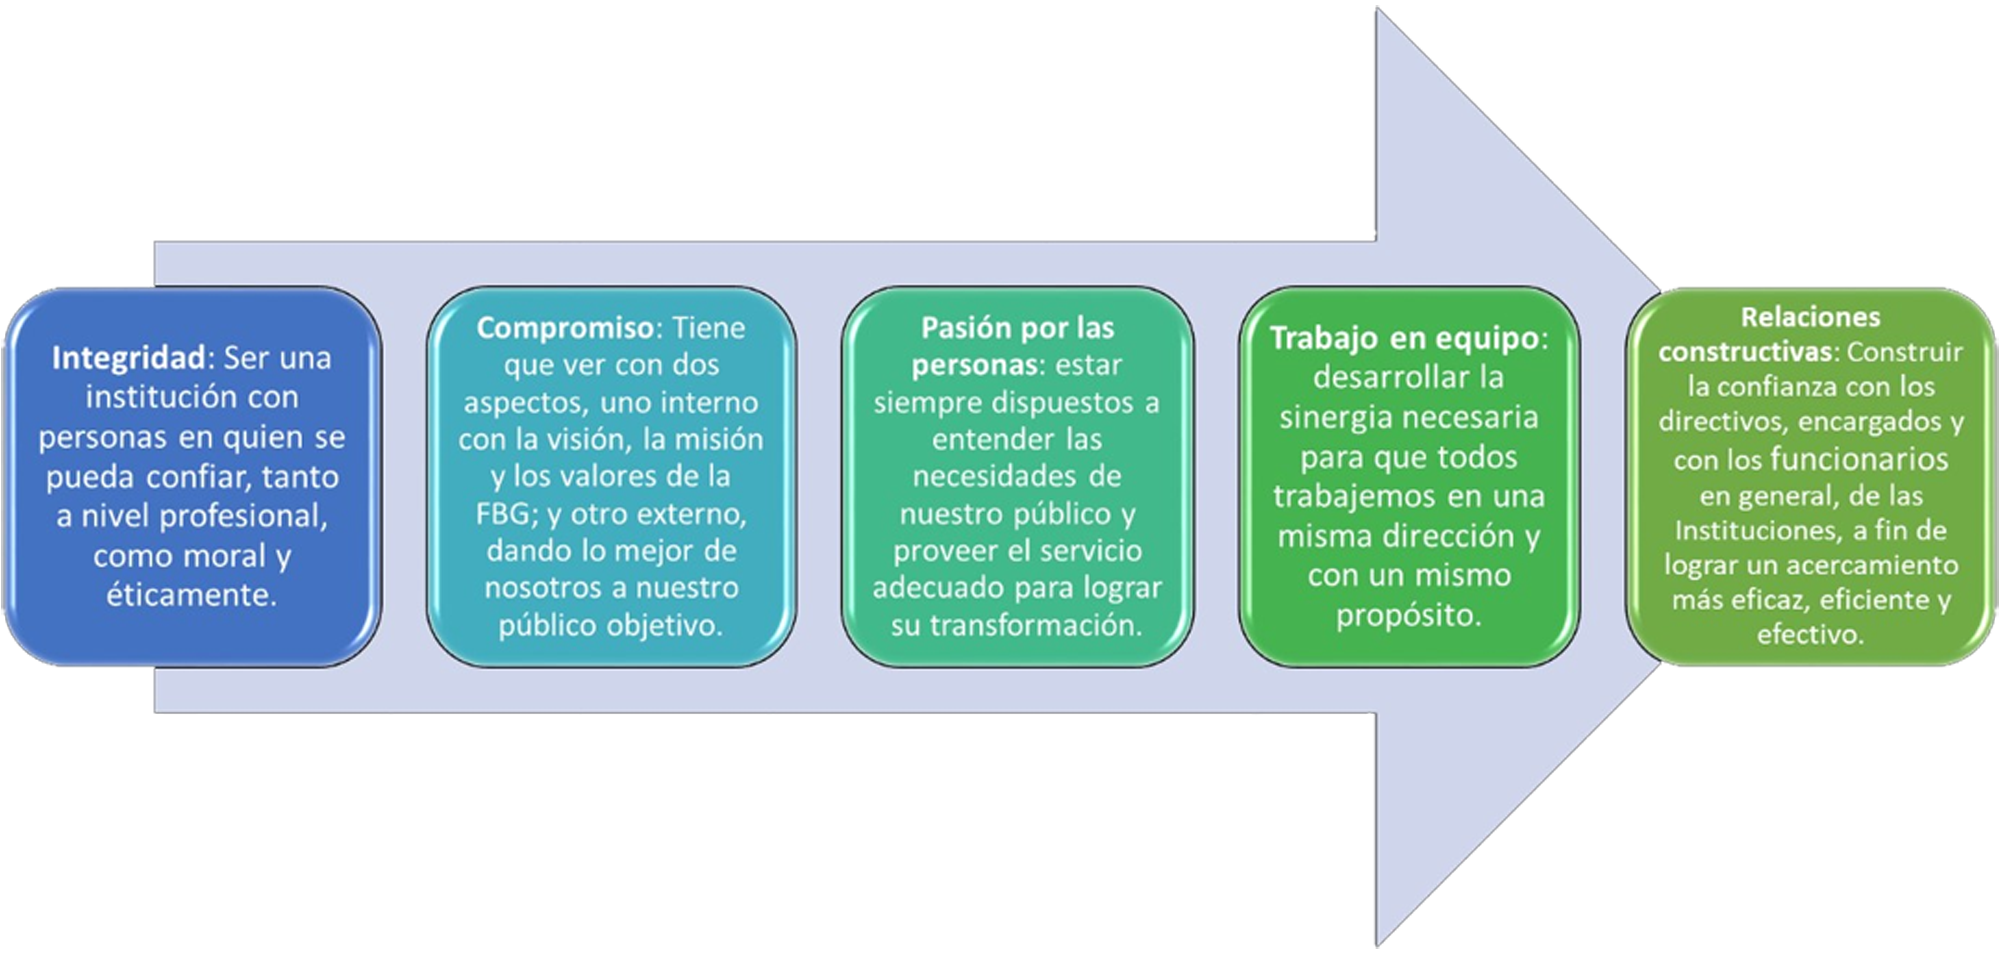 https://www.buengobierno.org.py/wp-content/uploads/2019/07/valores.png